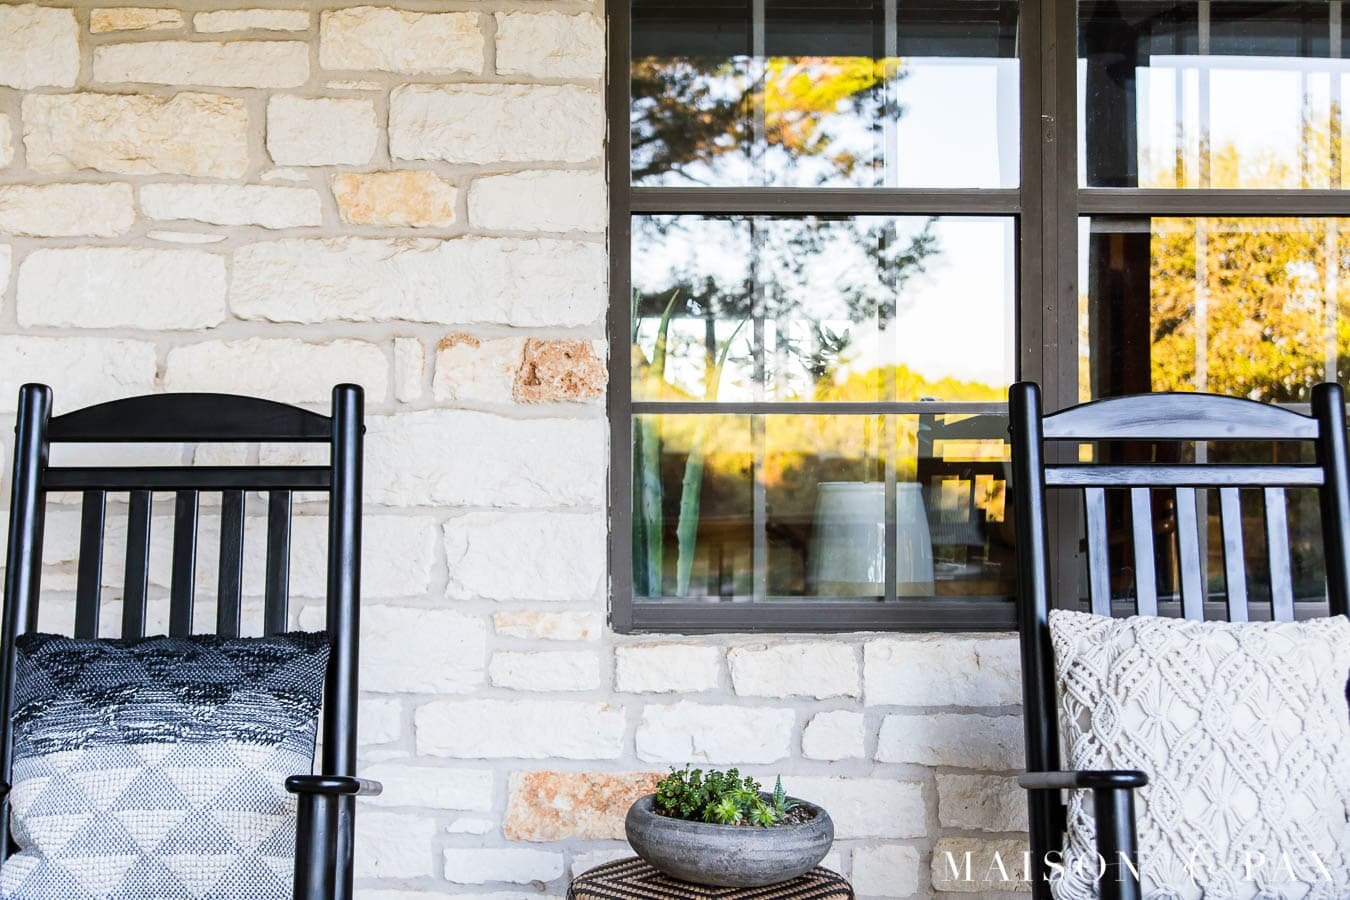 austin stone exterior with black windows and black rocking chairs on the porch | Maison de Pax